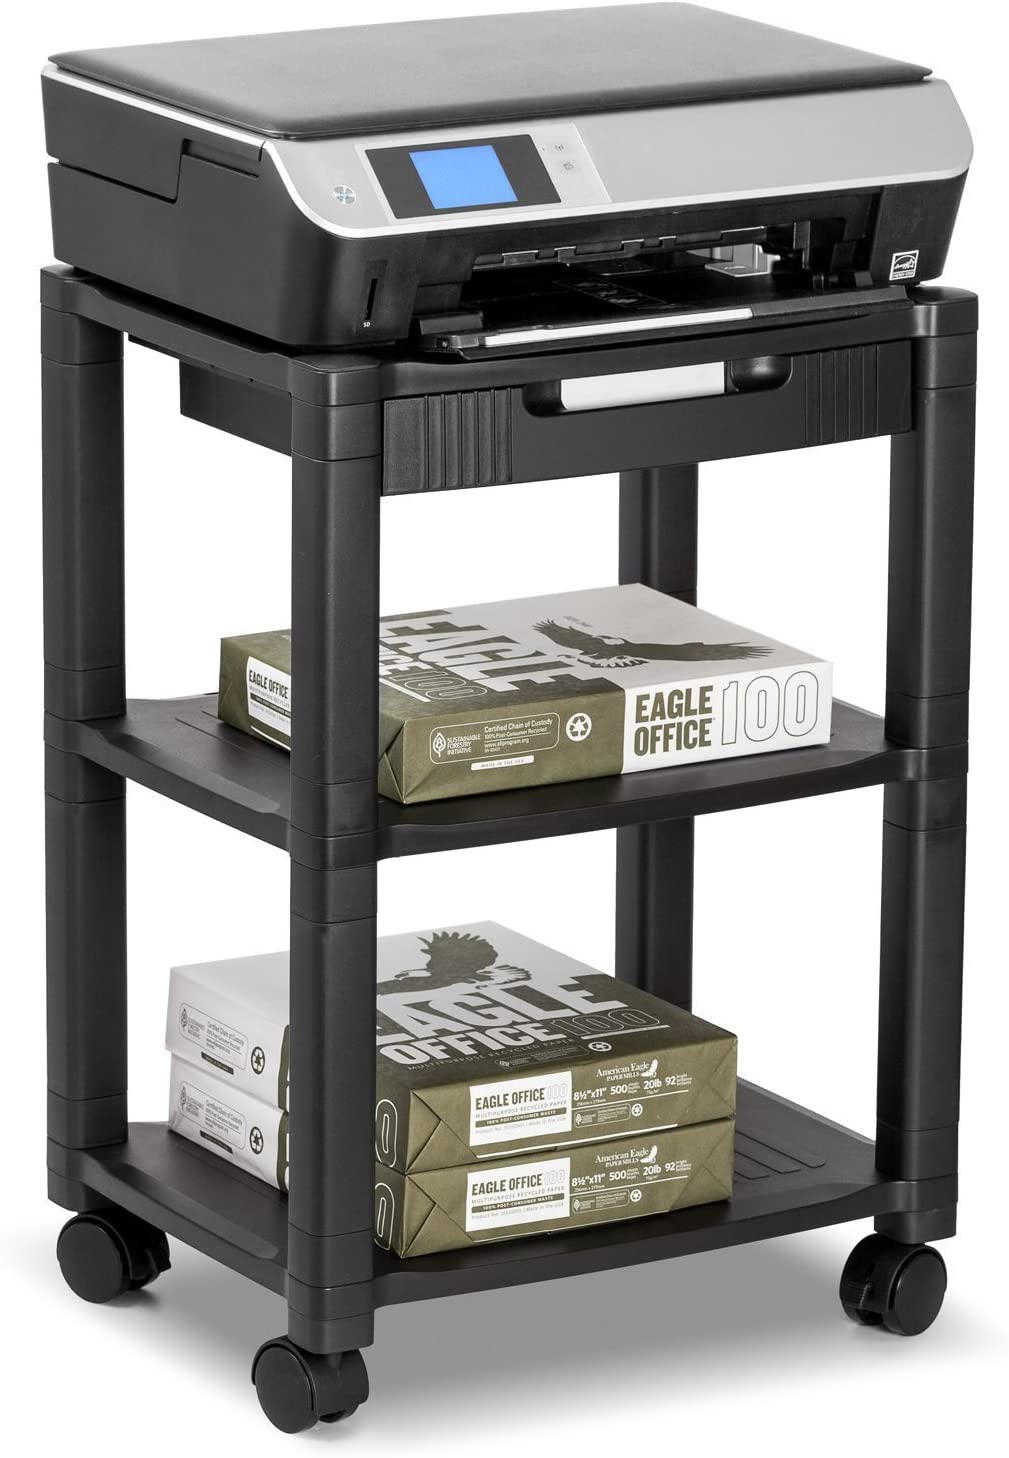 Halter LZ-308 Rolling Printer Cart Machine Stand with Cable Management – Holds Up to 75 Pounds Black